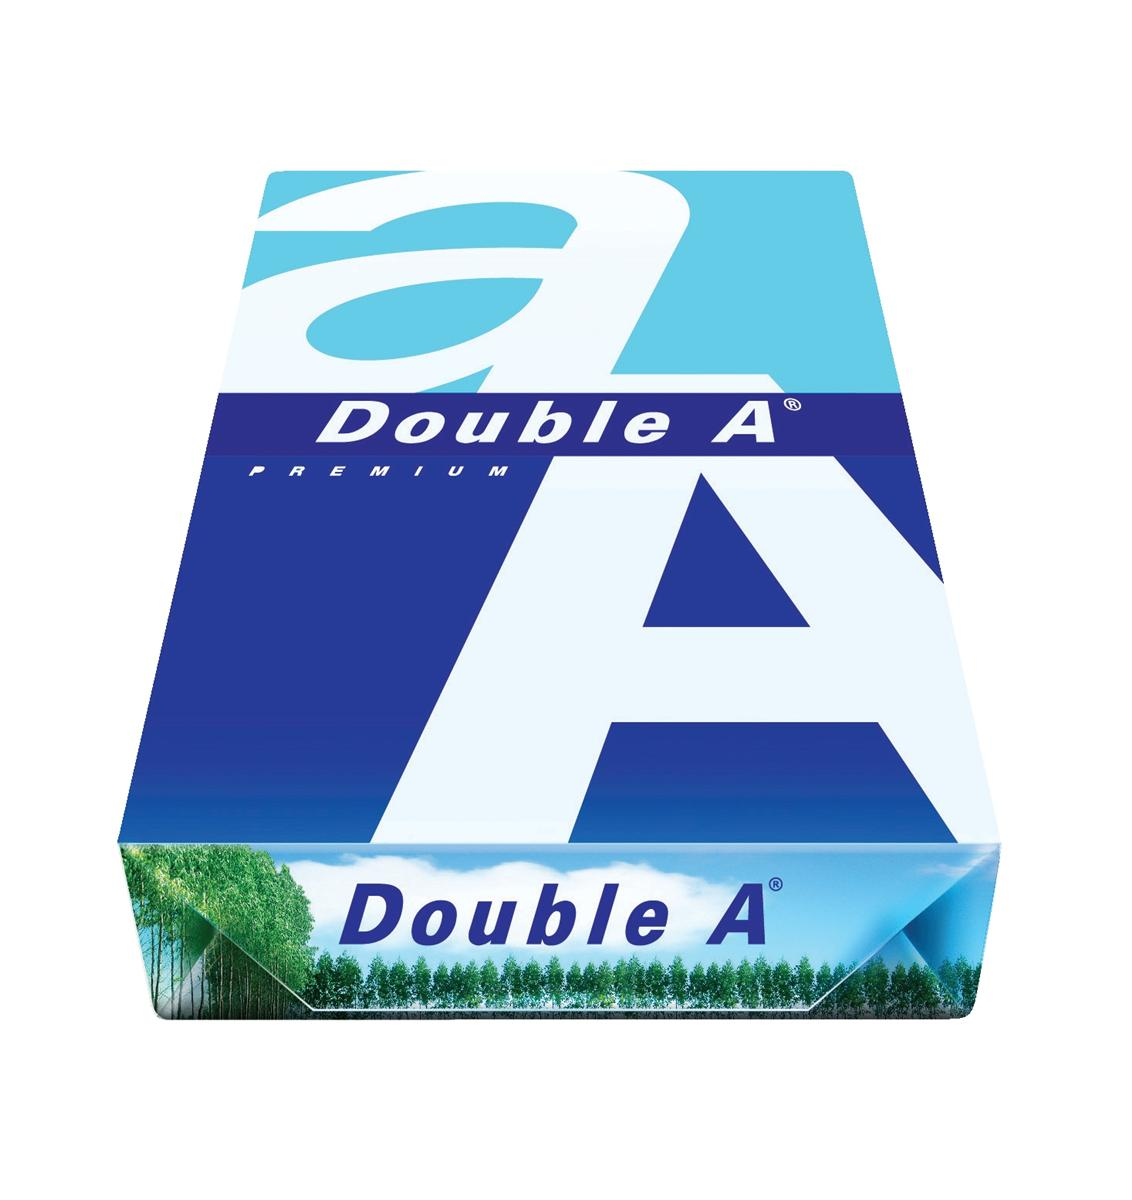 Image for Double A Premium Copier Paper Multifunctional Ream-Wrap 80gsm A4 White Ref 218140800612752 [500 Sheets]